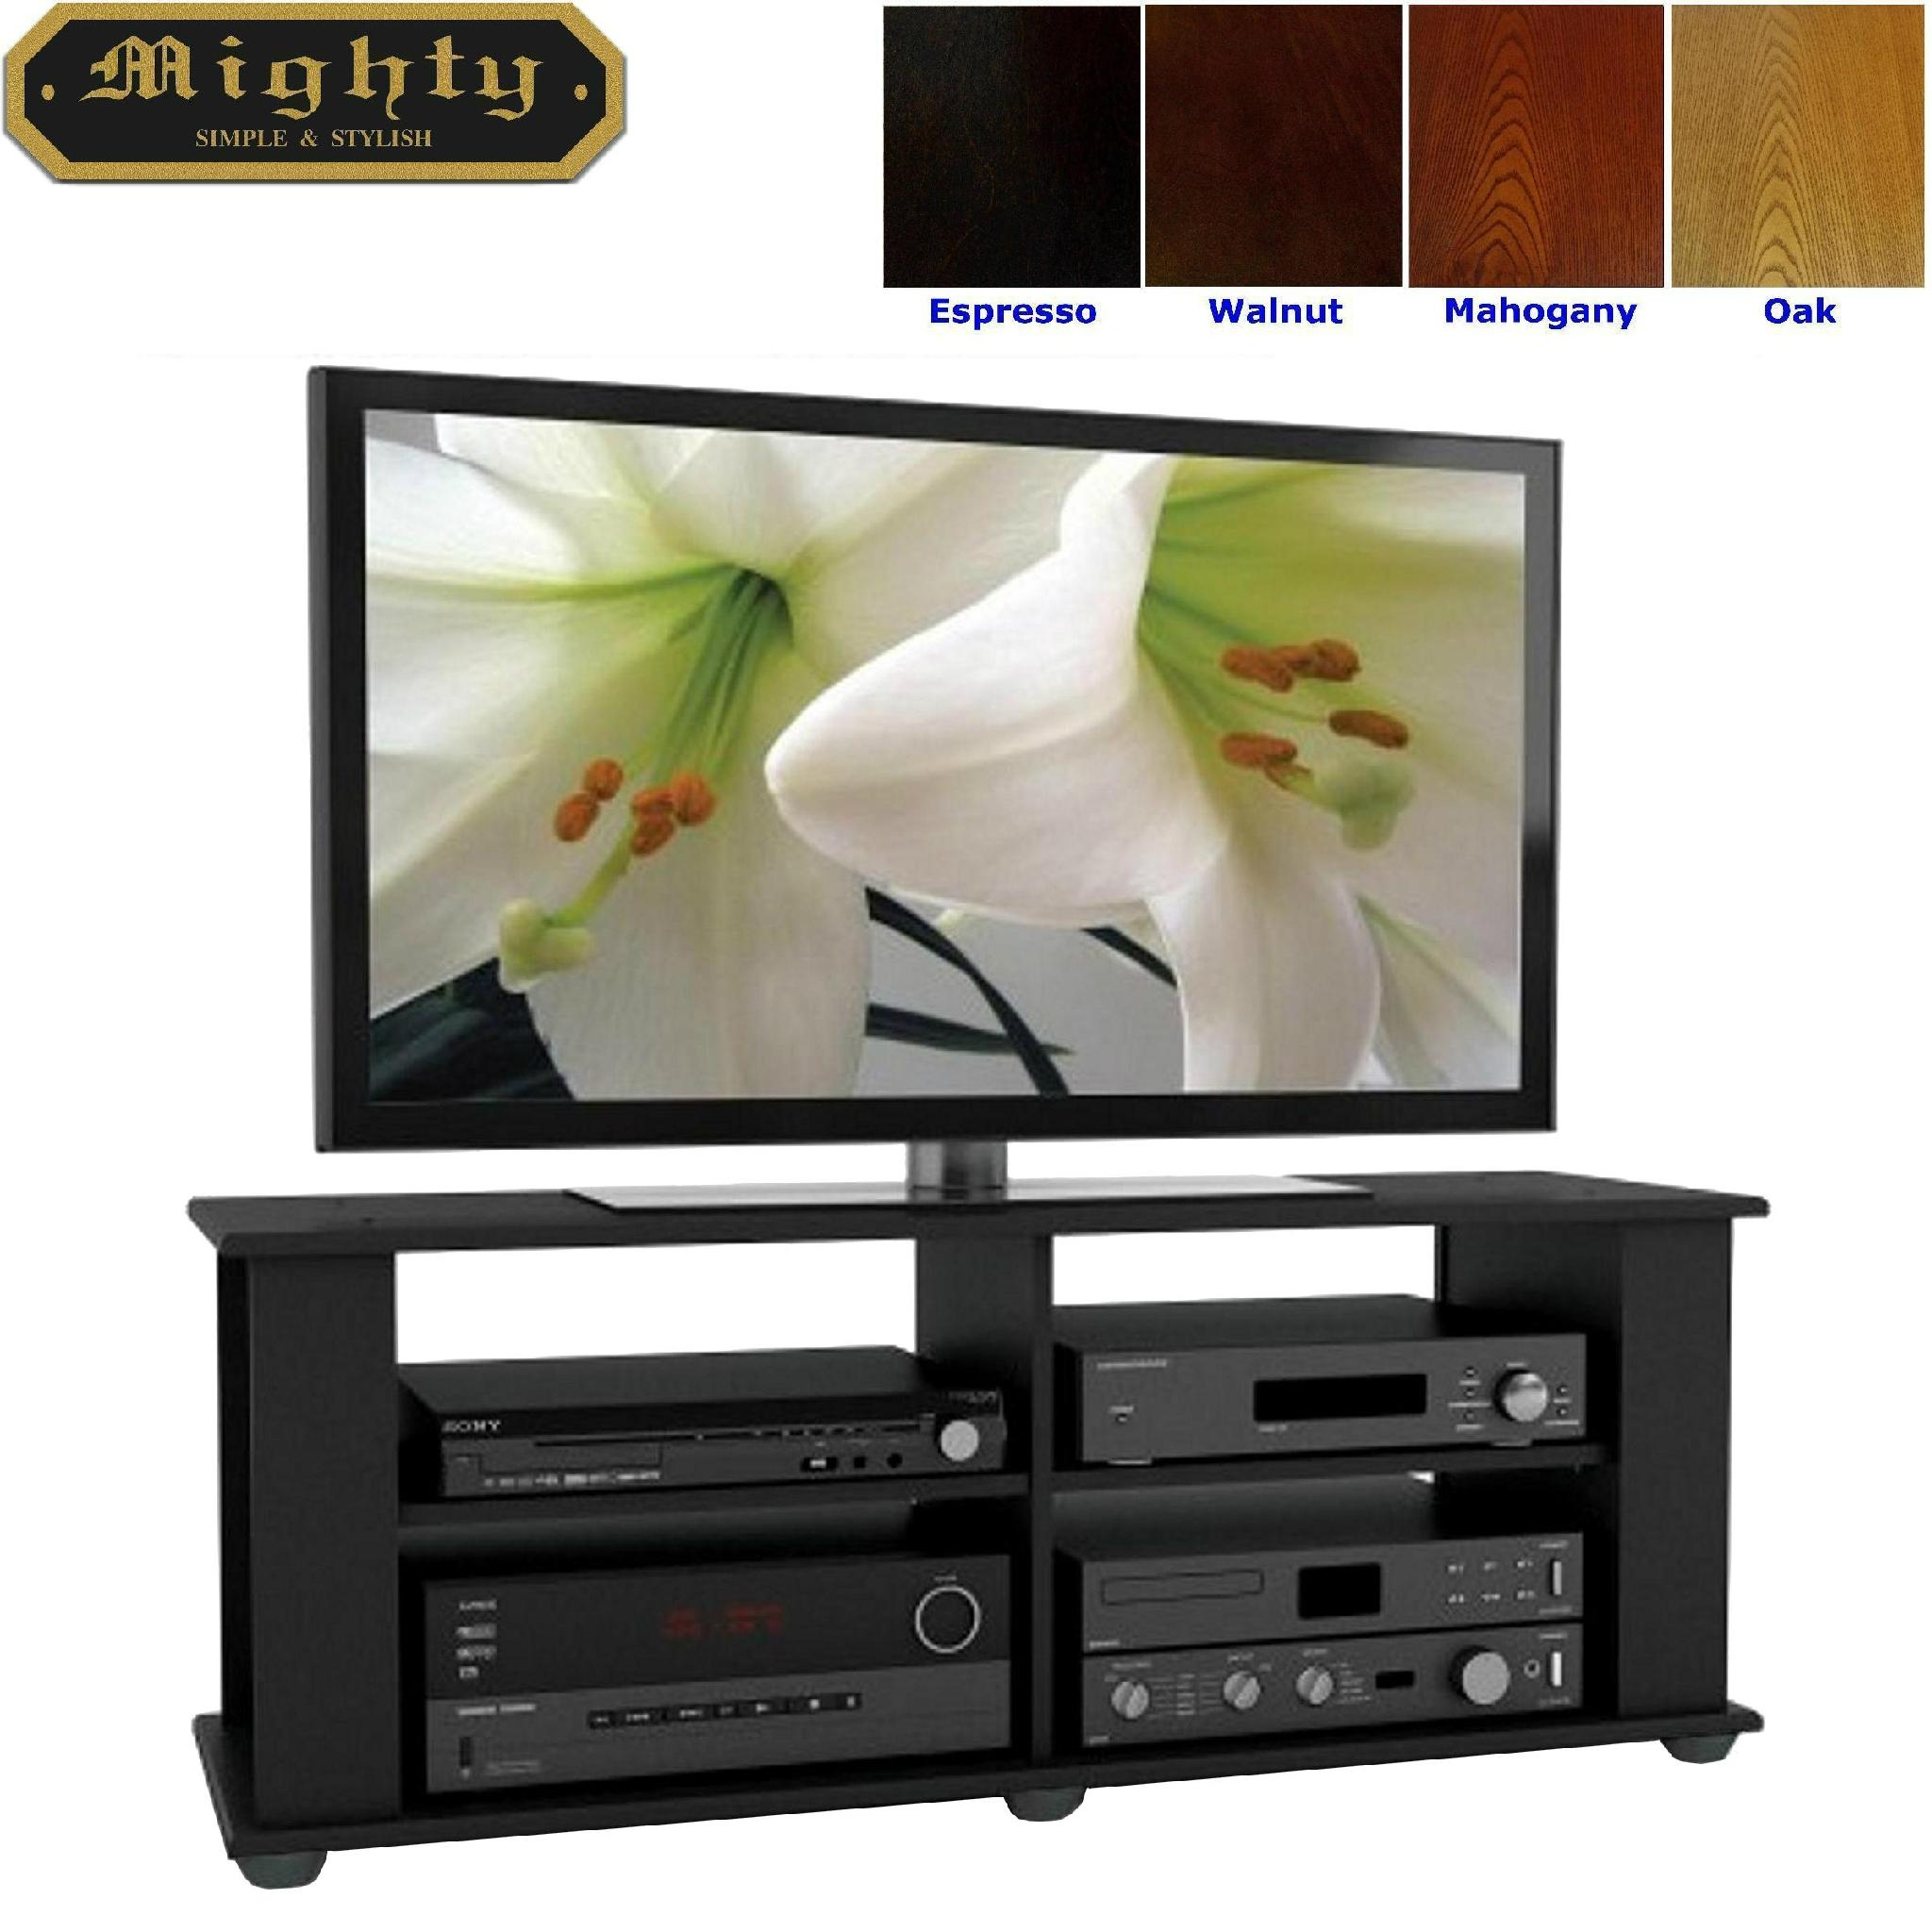 50 inch wooden simple design flat panel cheap tv stand wd 4005 mighty taiwan manufacturer. Black Bedroom Furniture Sets. Home Design Ideas